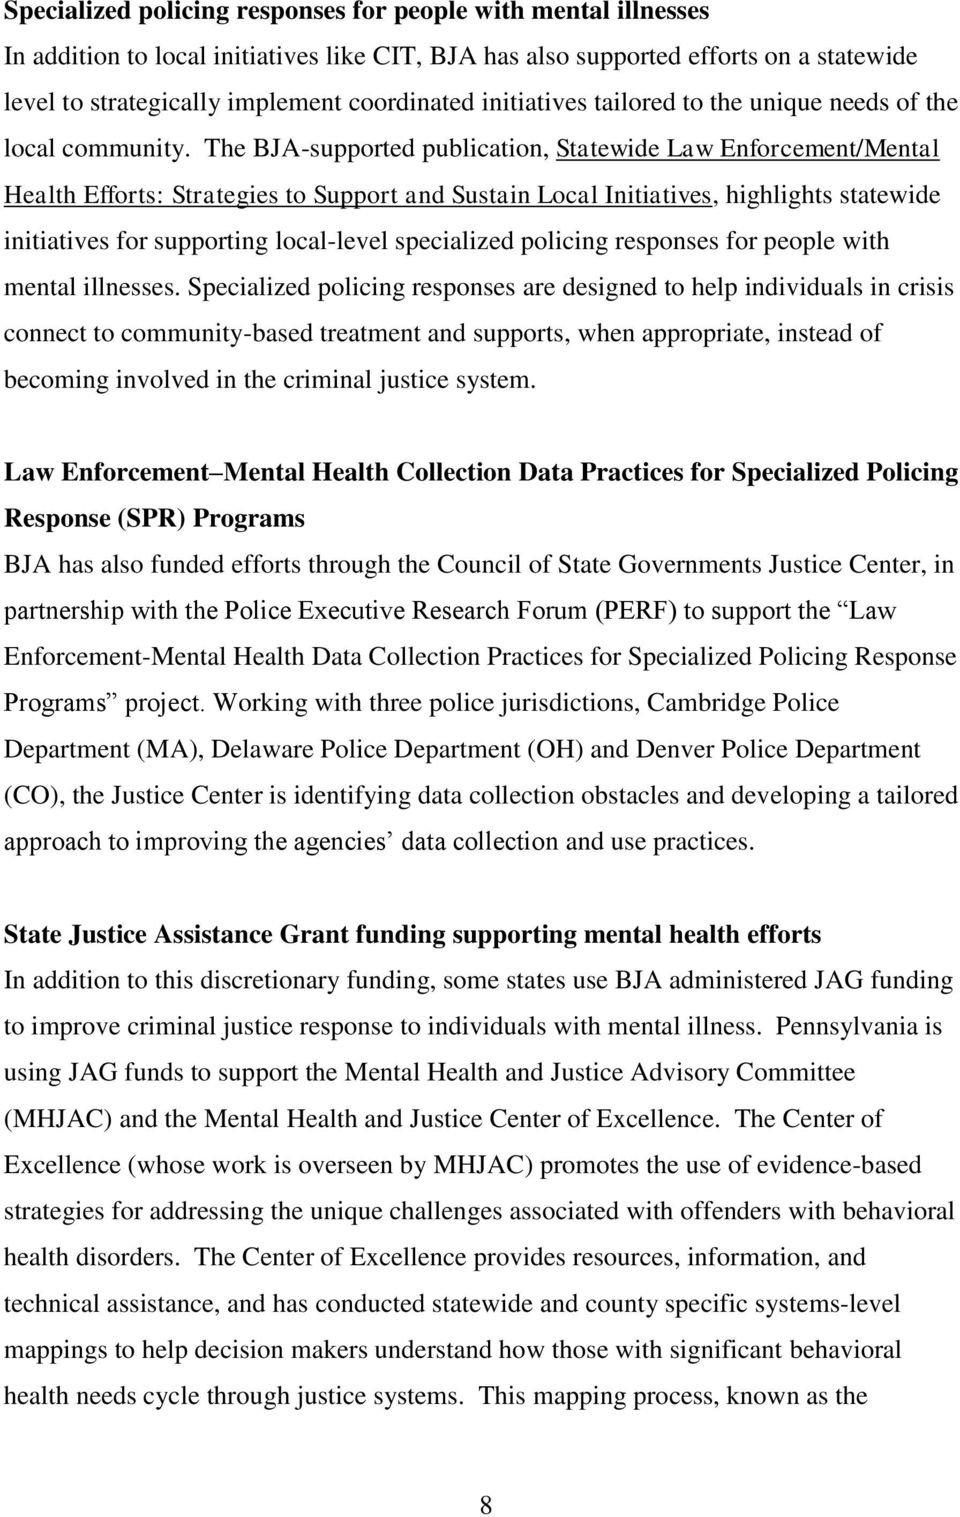 The BJA-supported publication, Statewide Law Enforcement/Mental Health Efforts: Strategies to Support and Sustain Local Initiatives, highlights statewide initiatives for supporting local-level